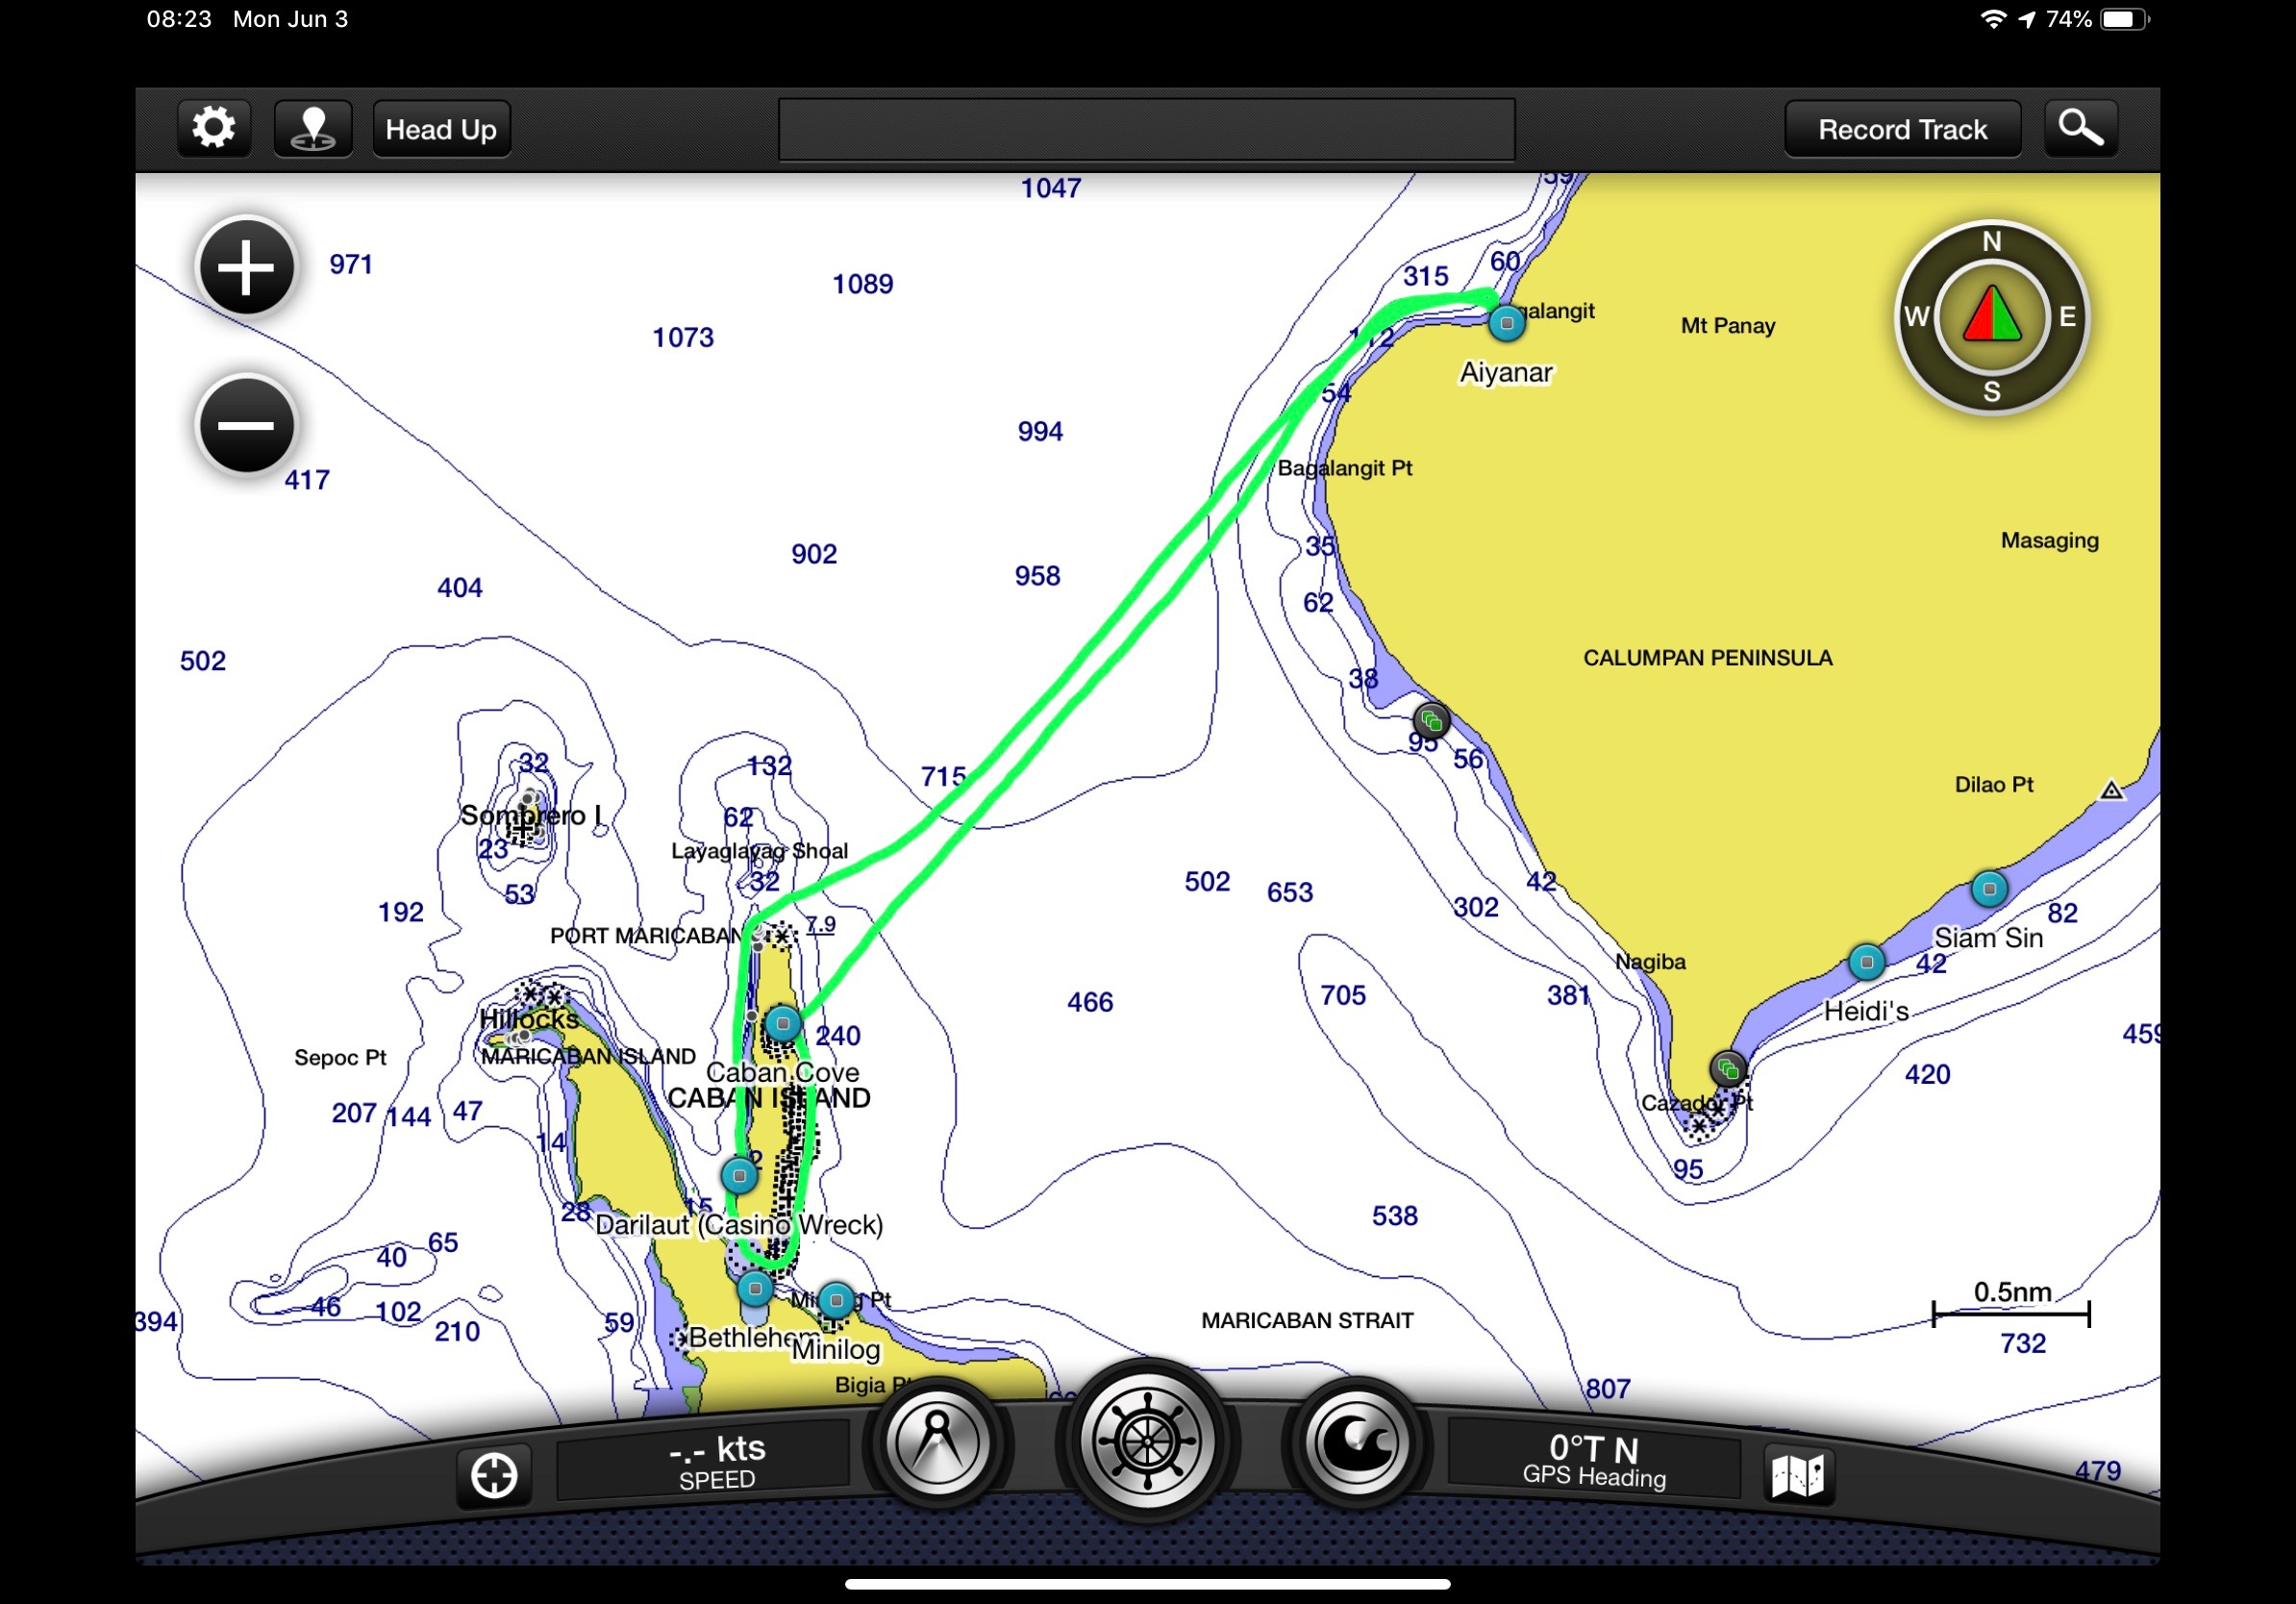 A sample of one of the tracks, displayed in my chartplotter app on my iPad. This was a two tank dive at Darilaut and Caban Cove.